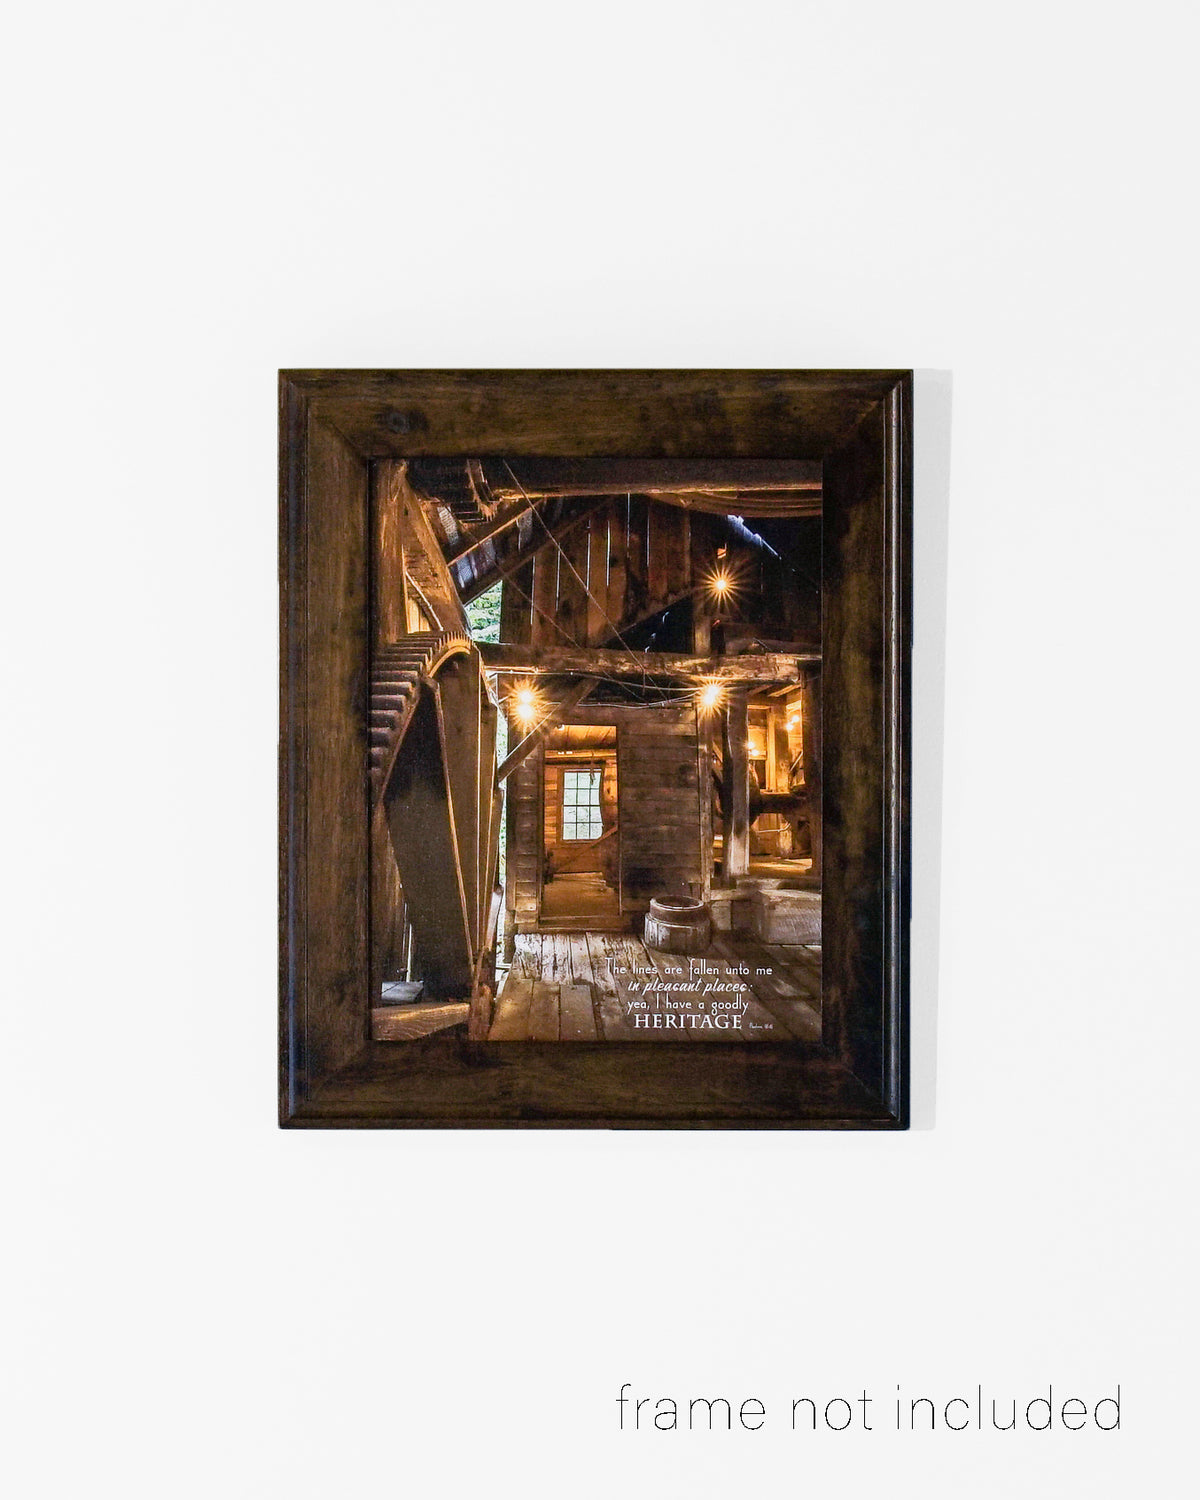 Framed print of Old wooden mill with scripture verse